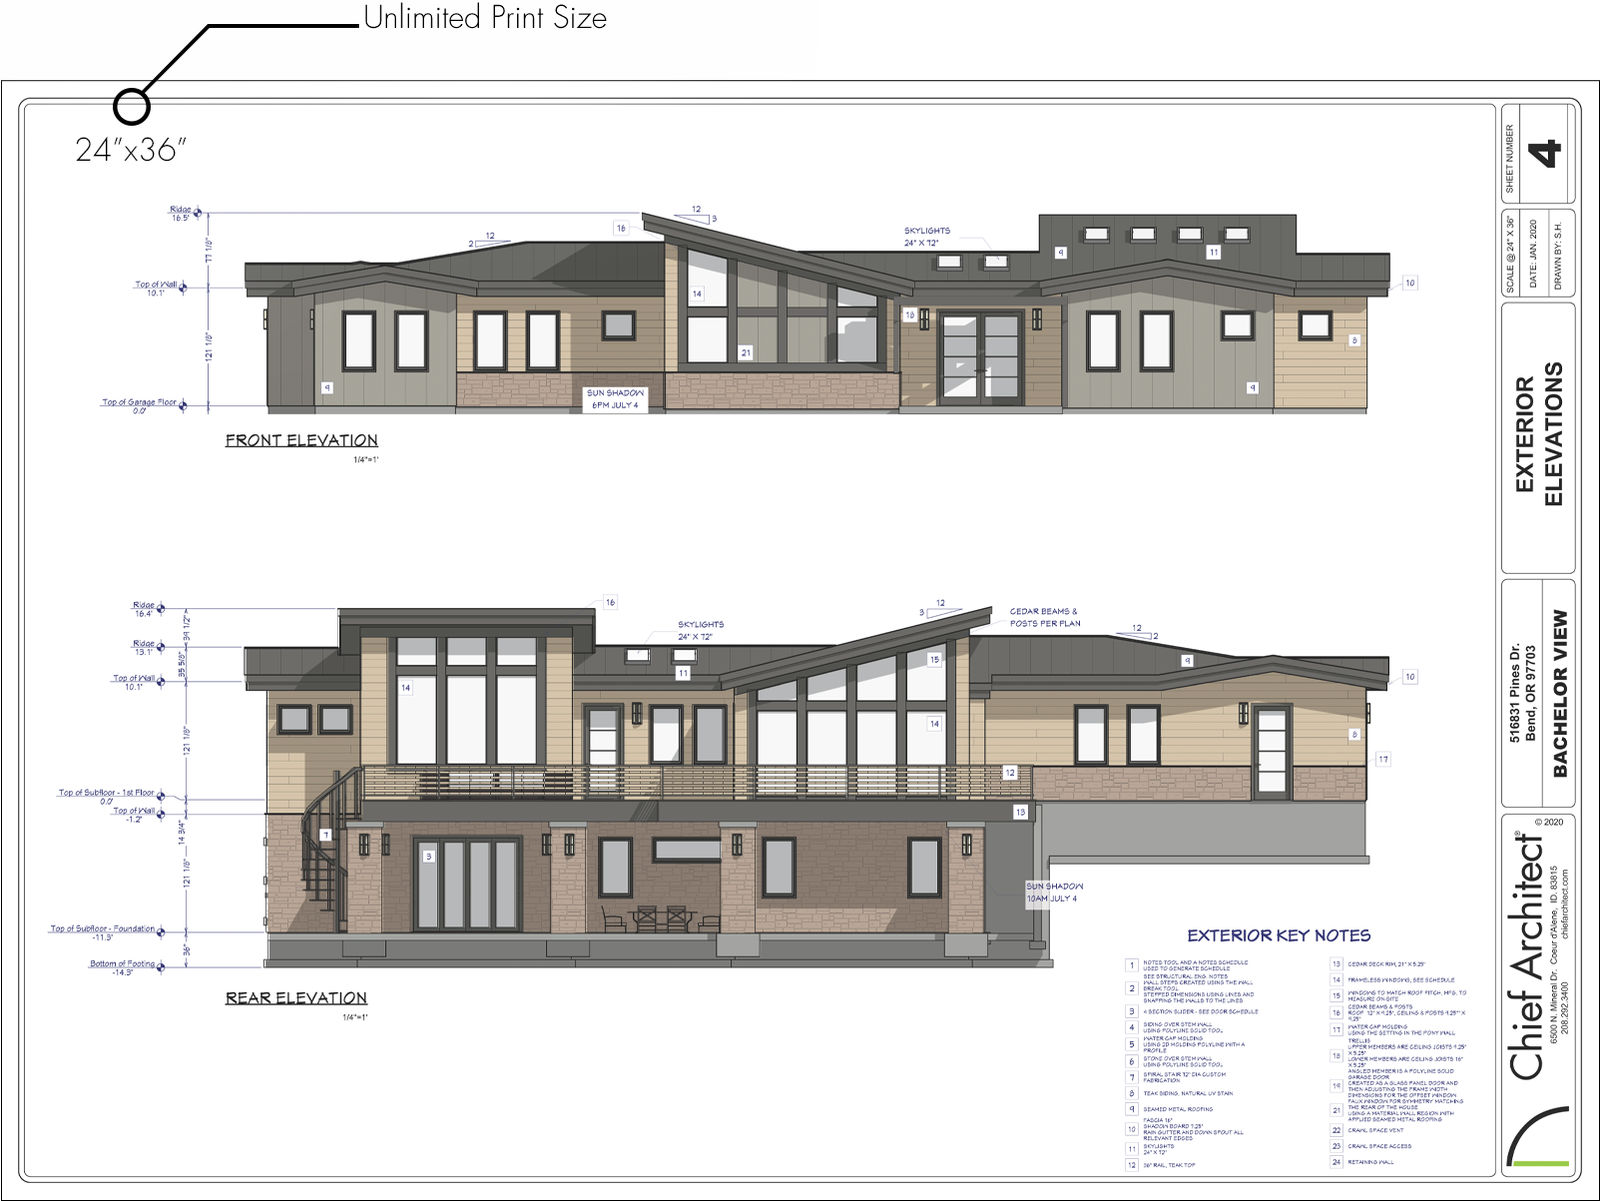 Construction drawings with exterior elevations and key notes printed 24″ x 36″.